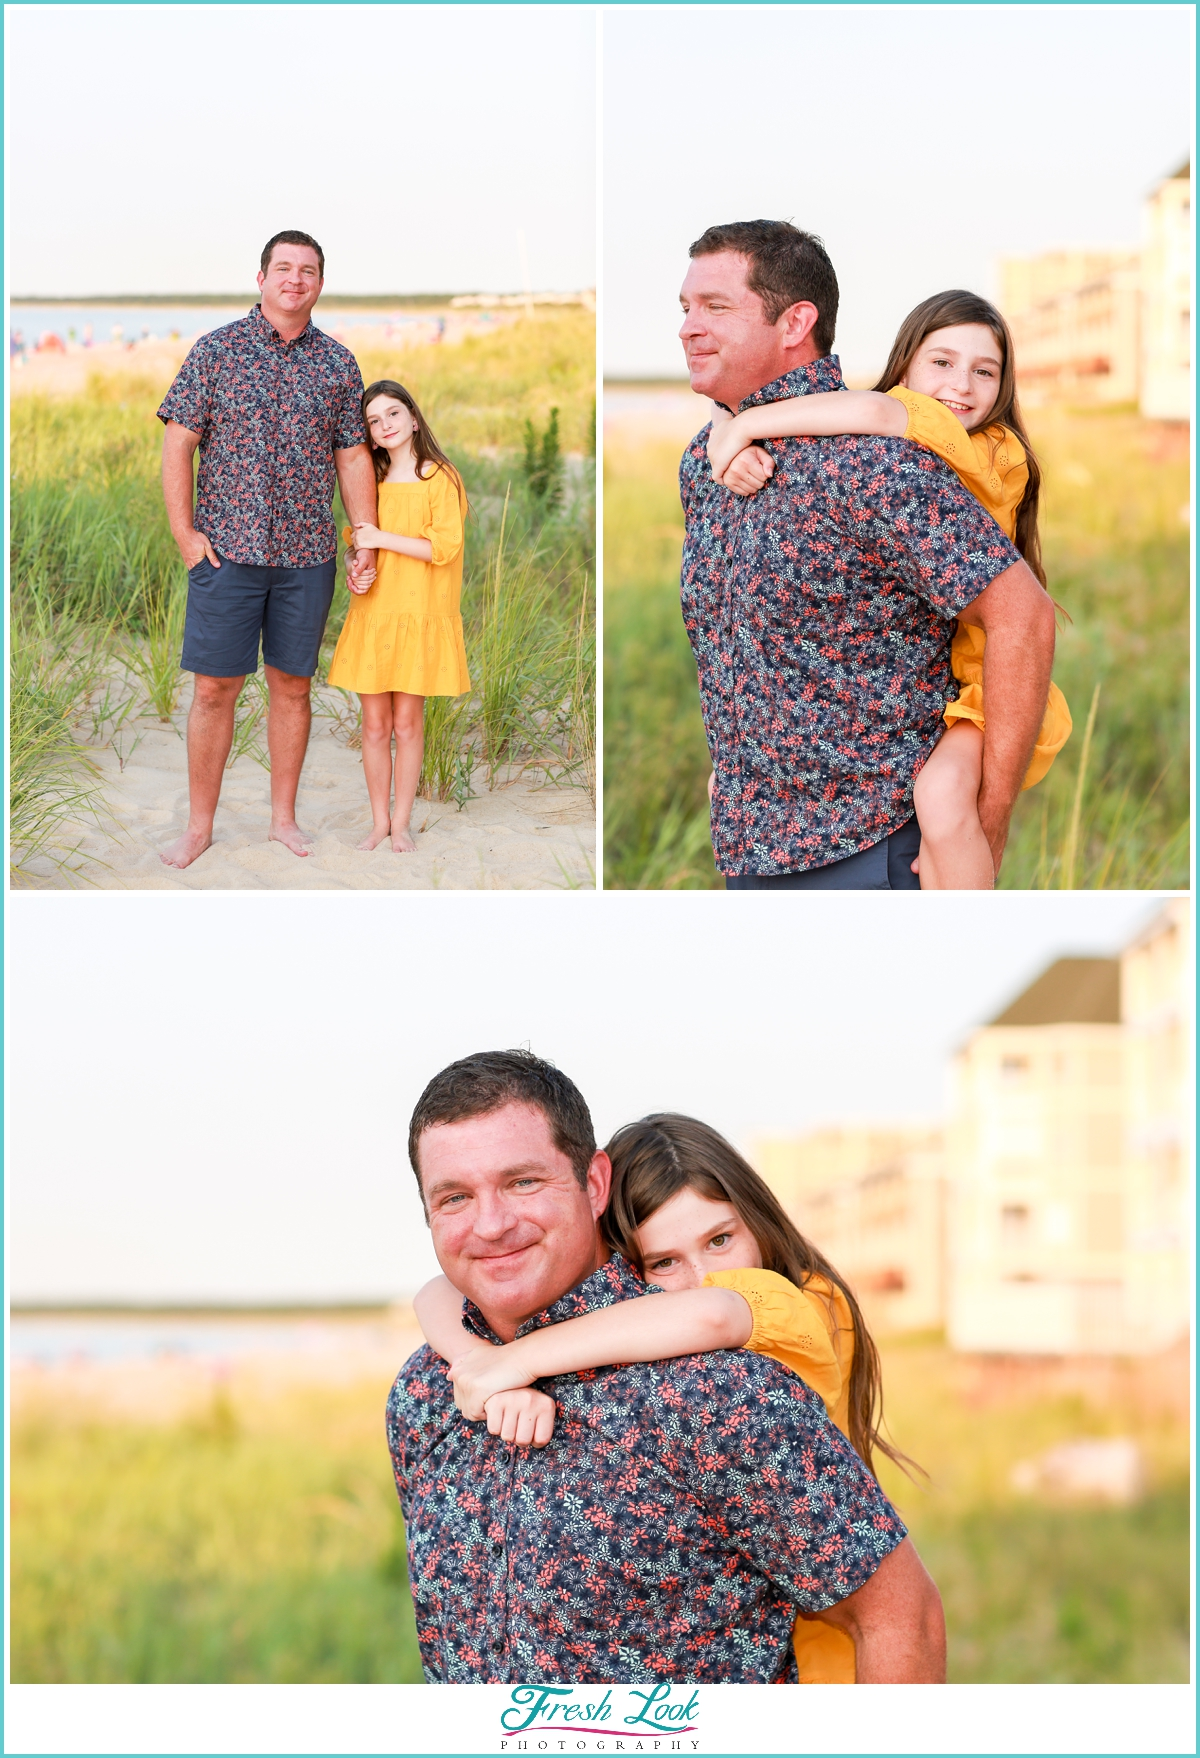 beach photoshoot with dad